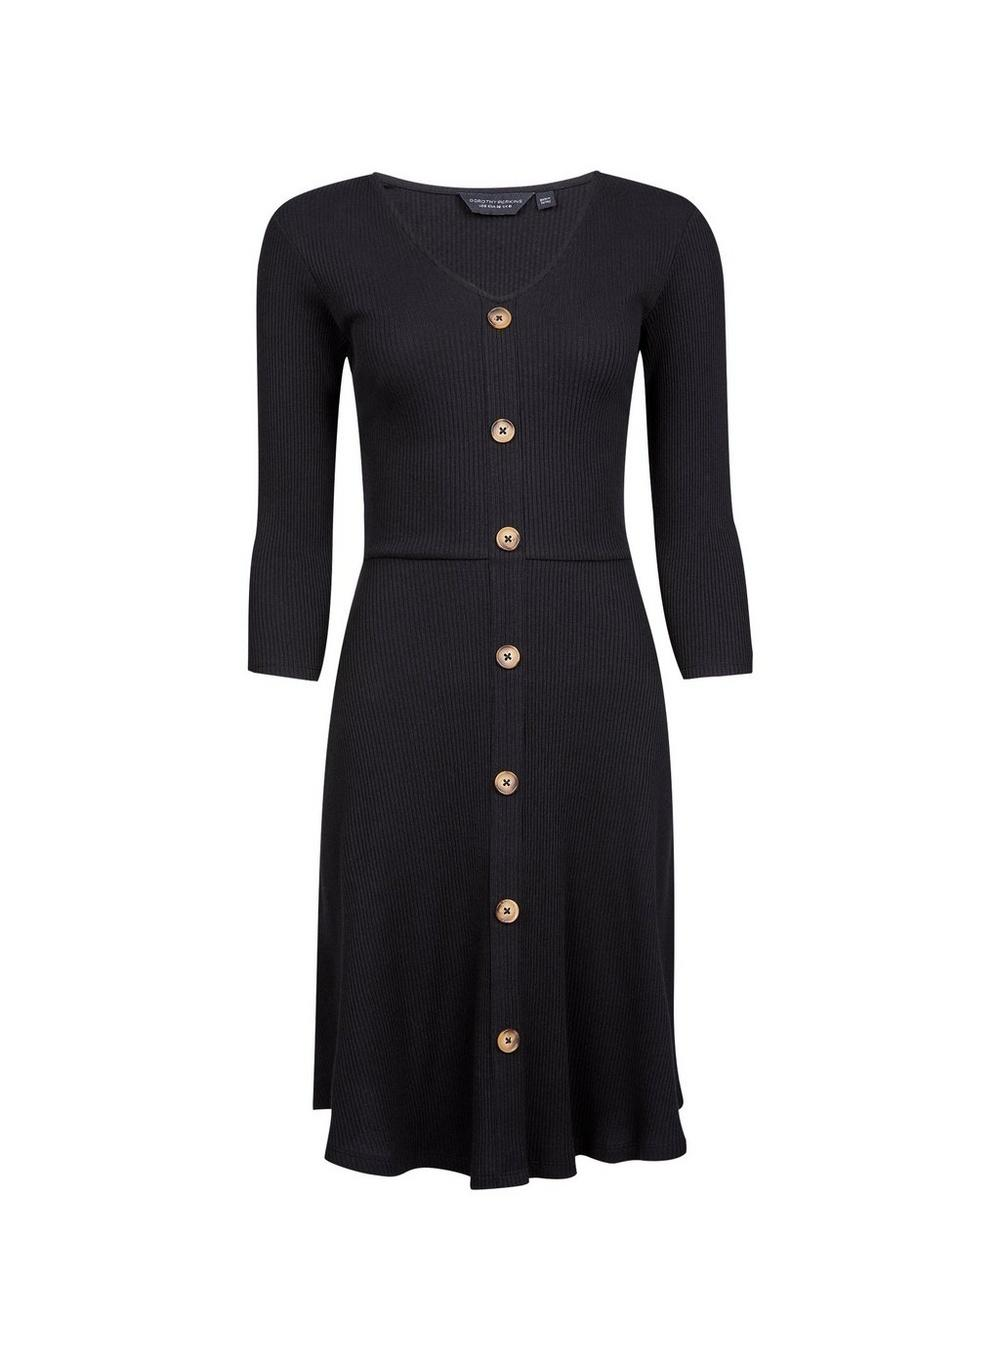 Lyst Dorothy Perkins Black Ribbed Fit And Flare Dress In